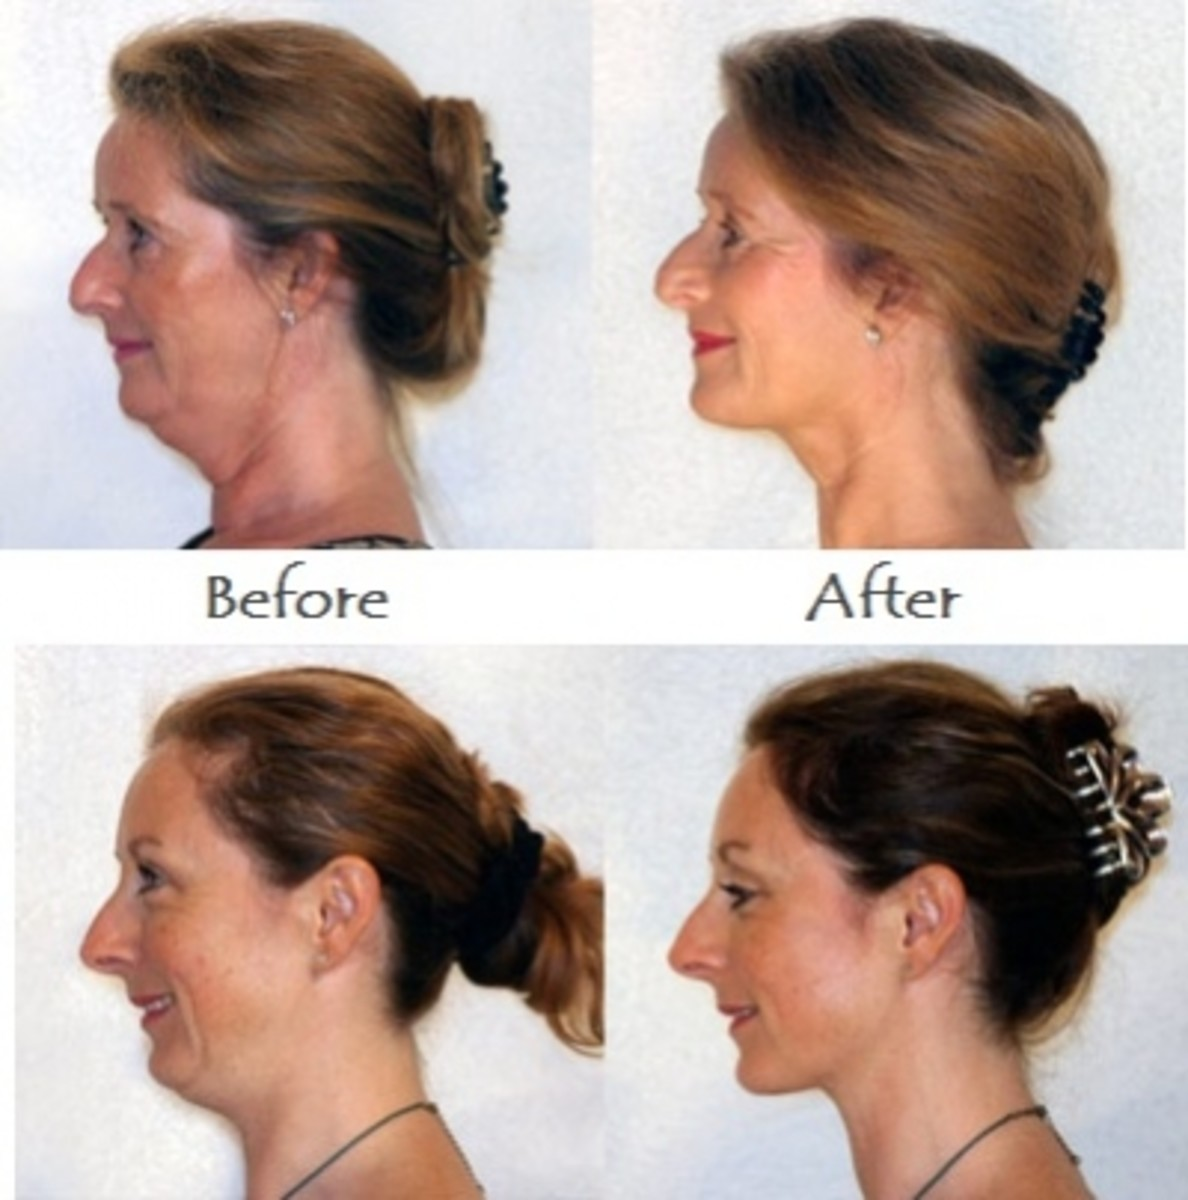 Neckline Slimmer Before and After Photos